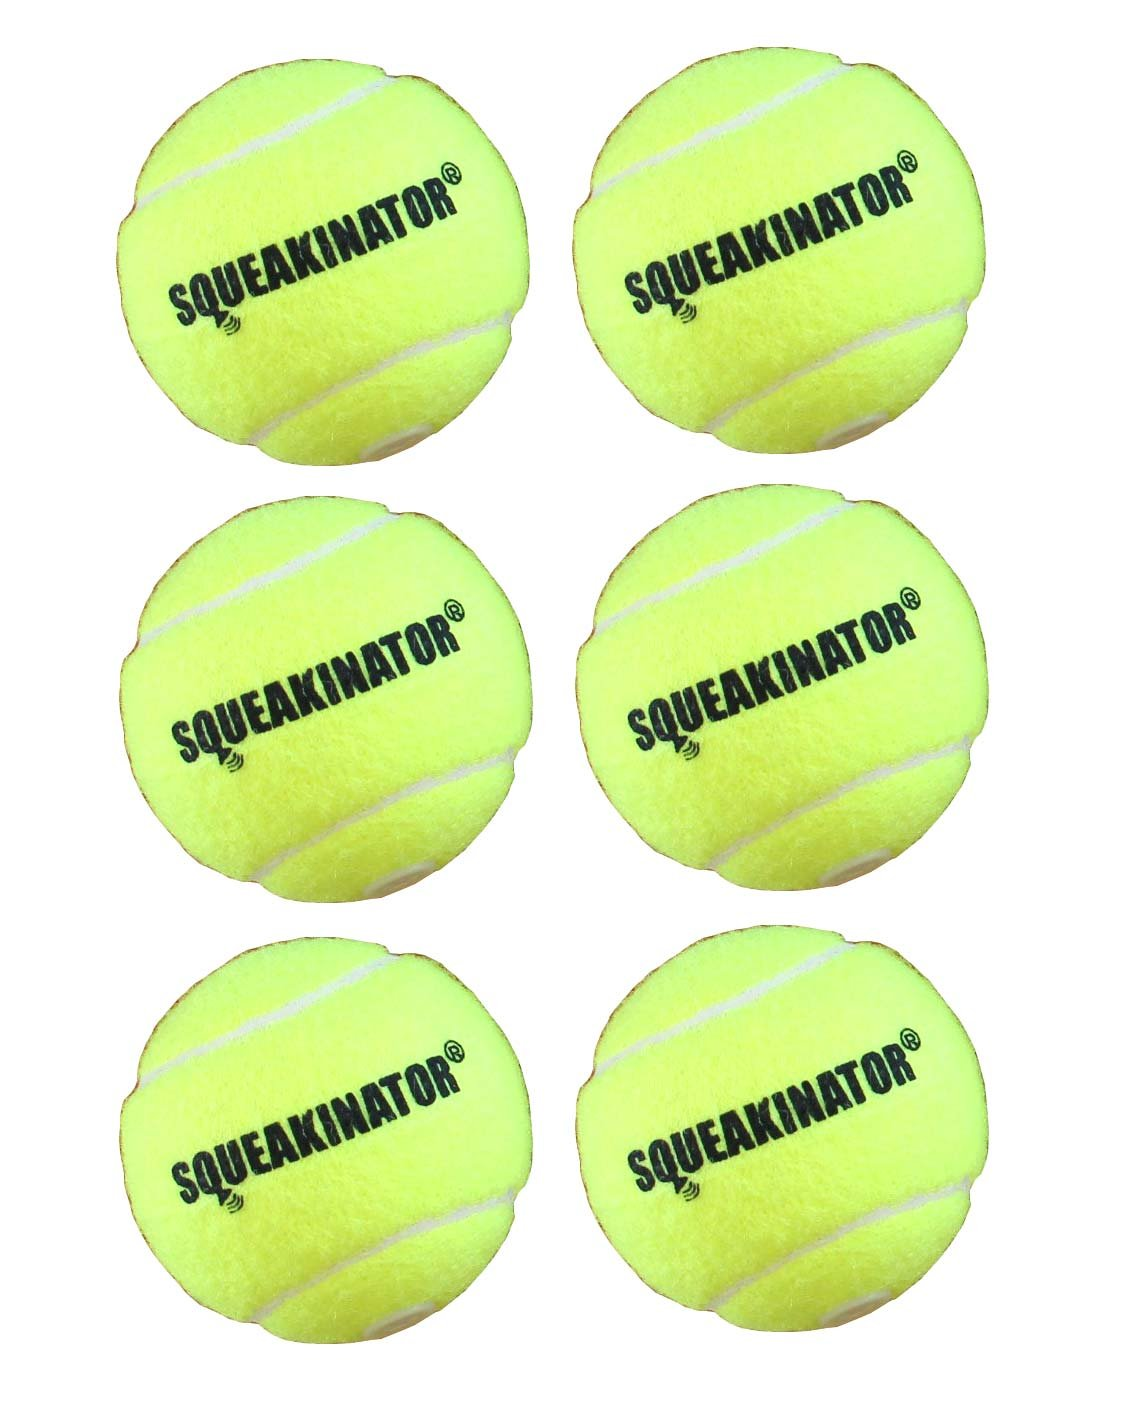 6 Pack Downtown Pet Supply SQUEAKINATOR  The Original Tennis Ball That squeaks for Dogs  Durable Dog Toy  Medium Size 2 3 4  Diameter